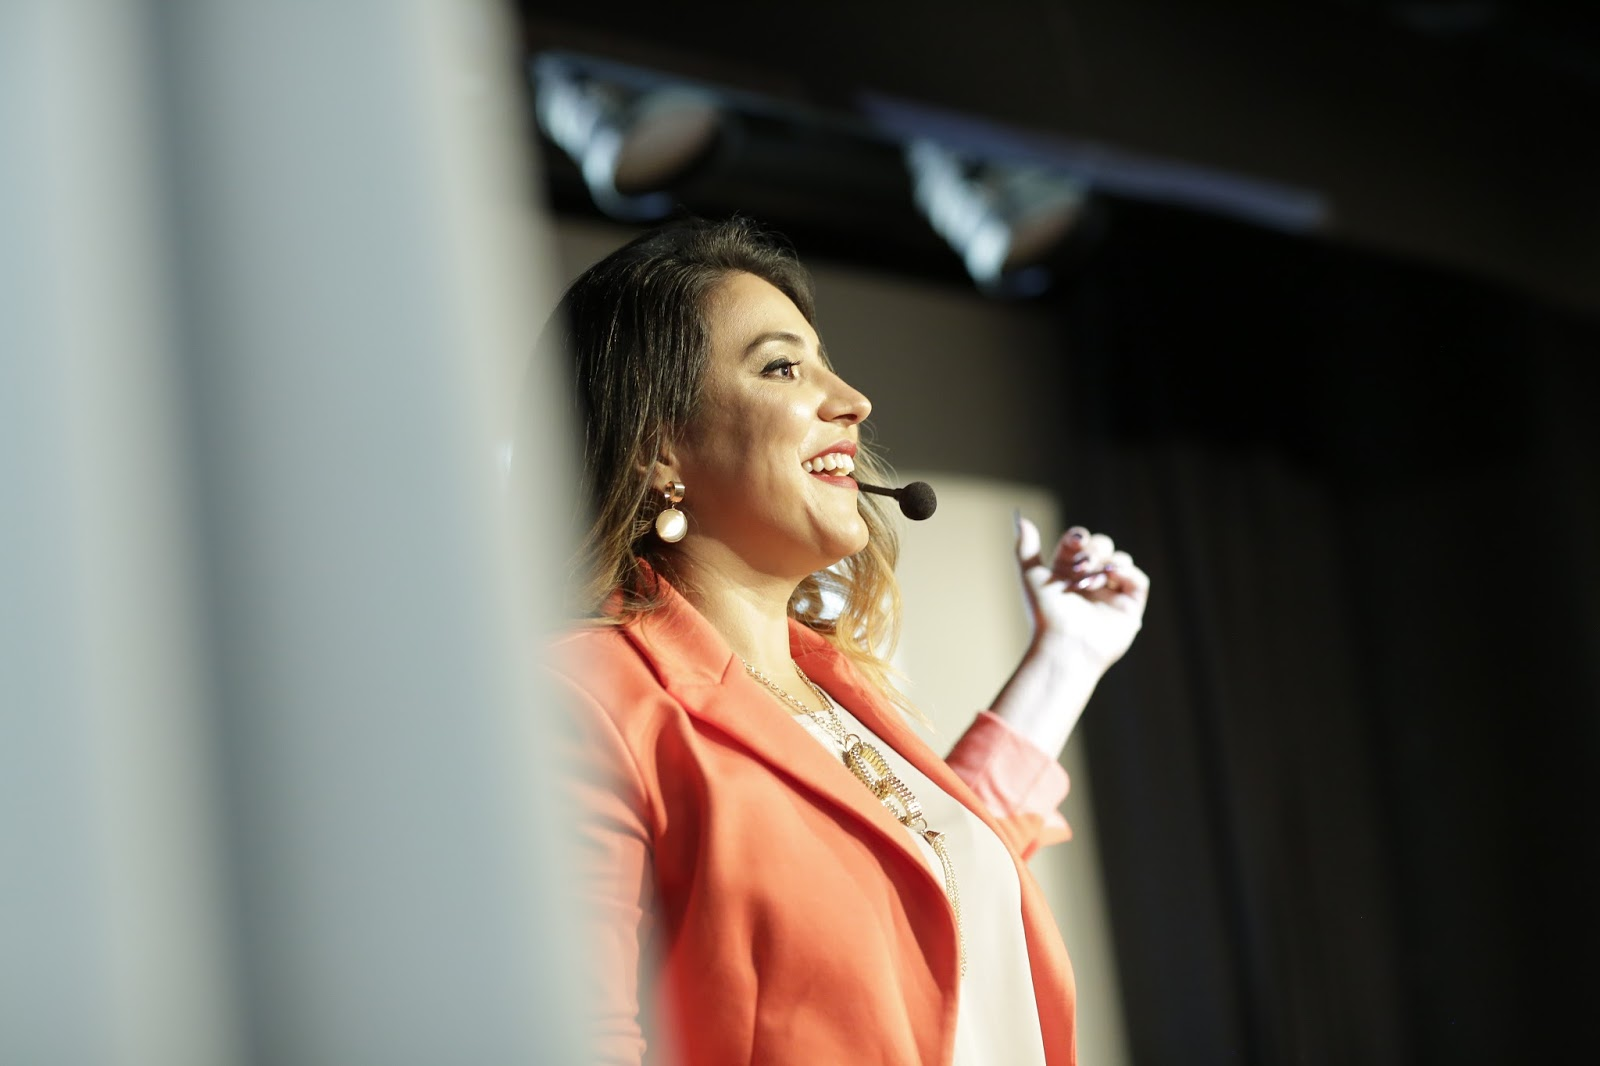 Tríade Recrie-se realiza Talk Show no Teatro do Brasília Shopping